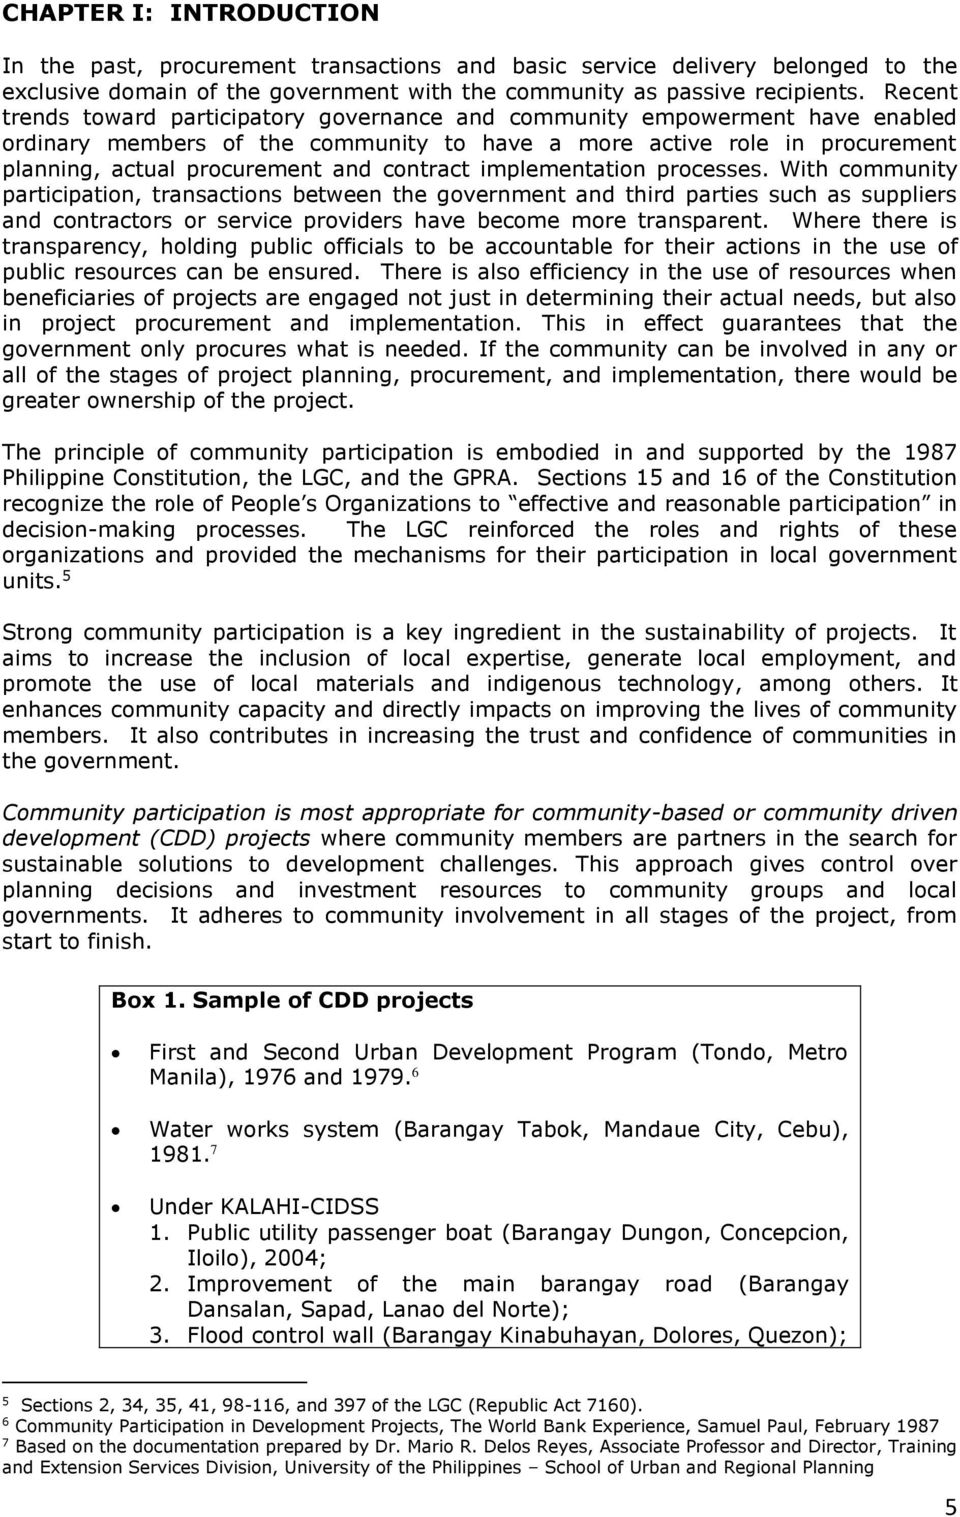 MANUAL ON COMMUNITY PARTICIPATION IN GOVERNMENT PROCUREMENT